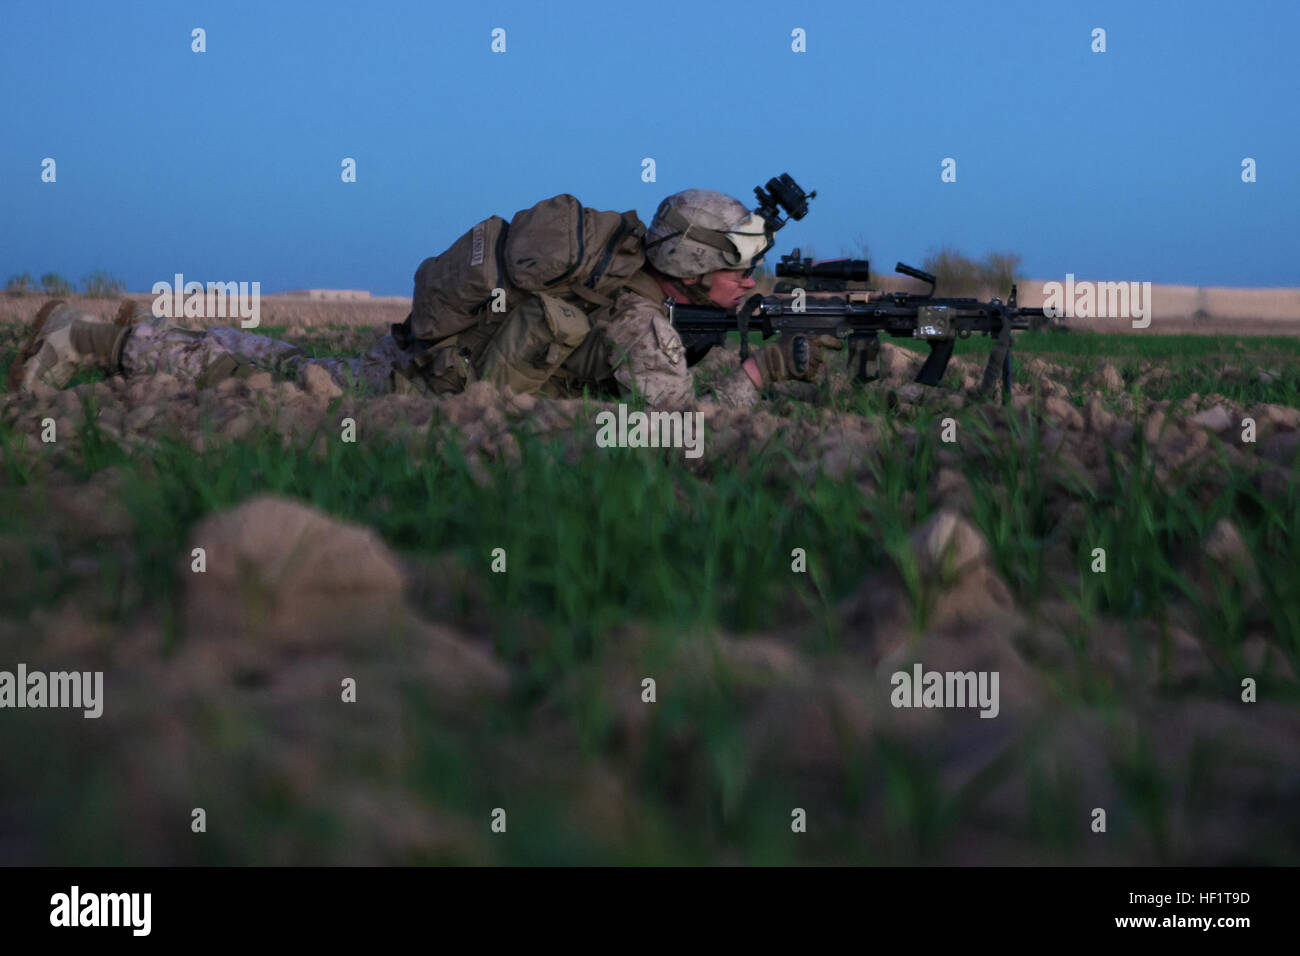 Lance Cpl. Nathan Chandler, a Logan, Ohio, native and machine gunner with 1st Battalion, 9th Marines, hunkers down Stock Photo